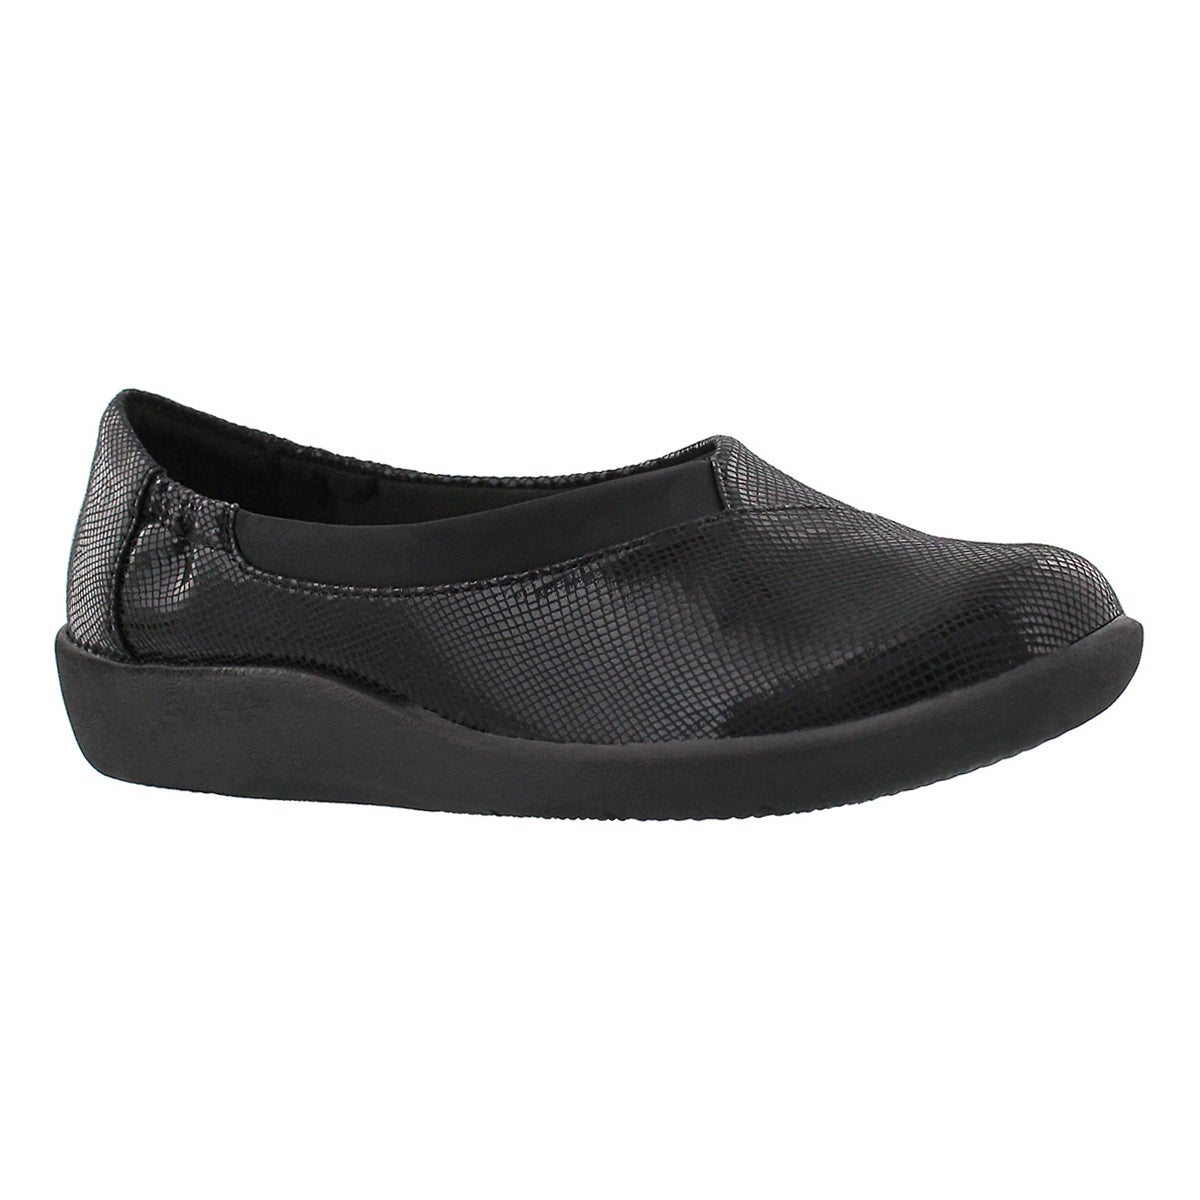 Women's SILLIAN JETAY black slip on